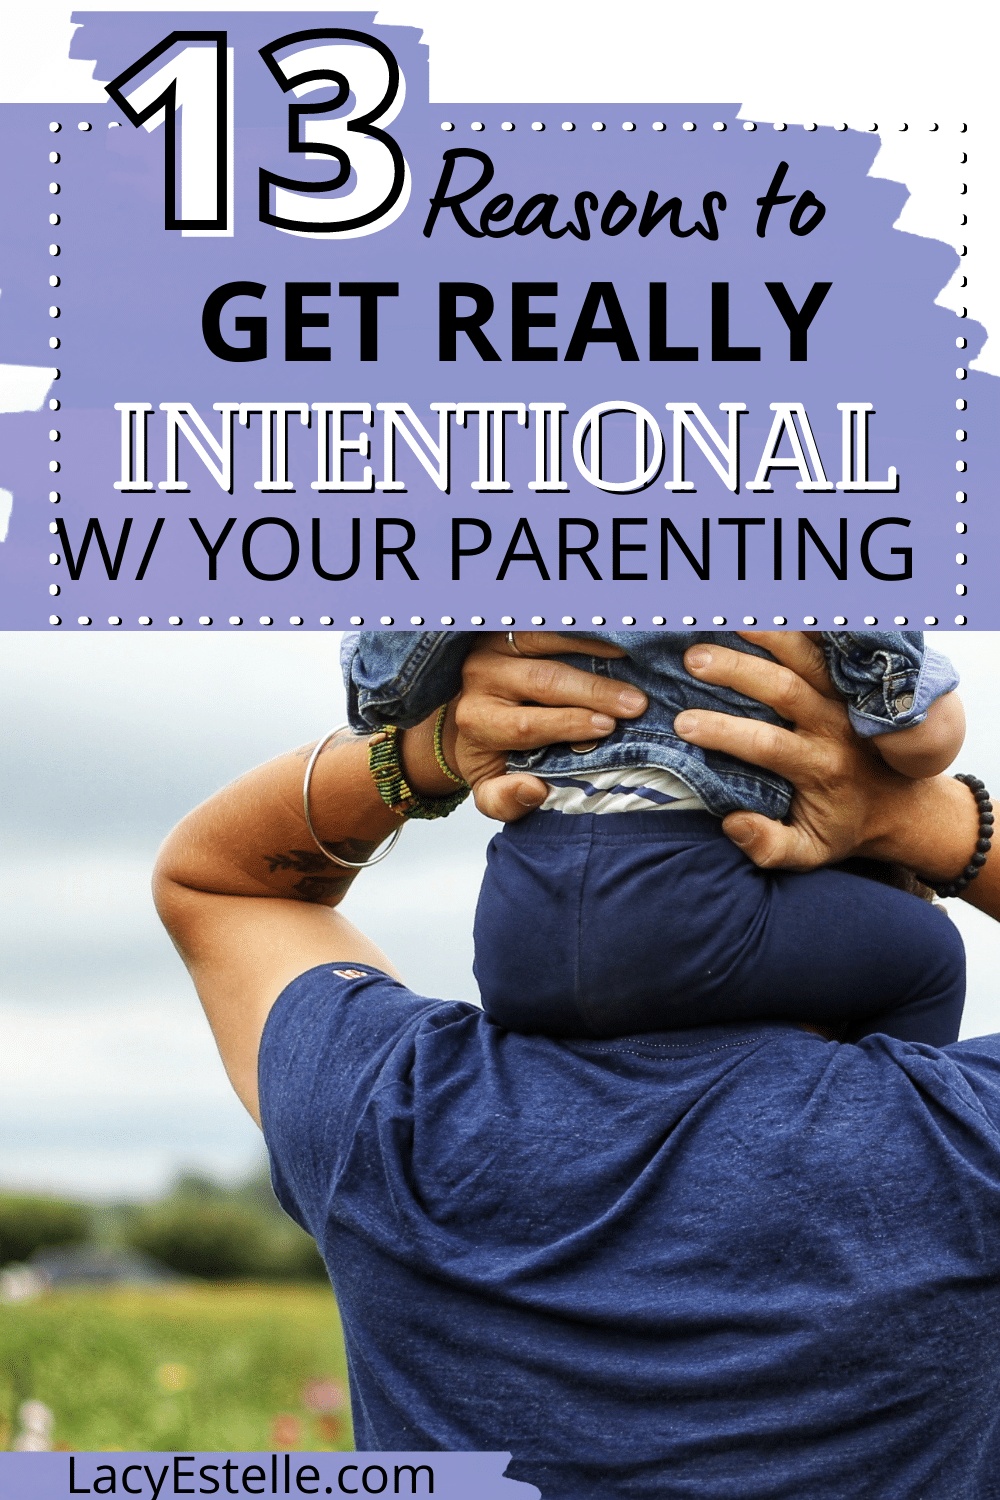 13 Reasons to be more intentional with your parenting. Parenting more intentionally and disciplined.